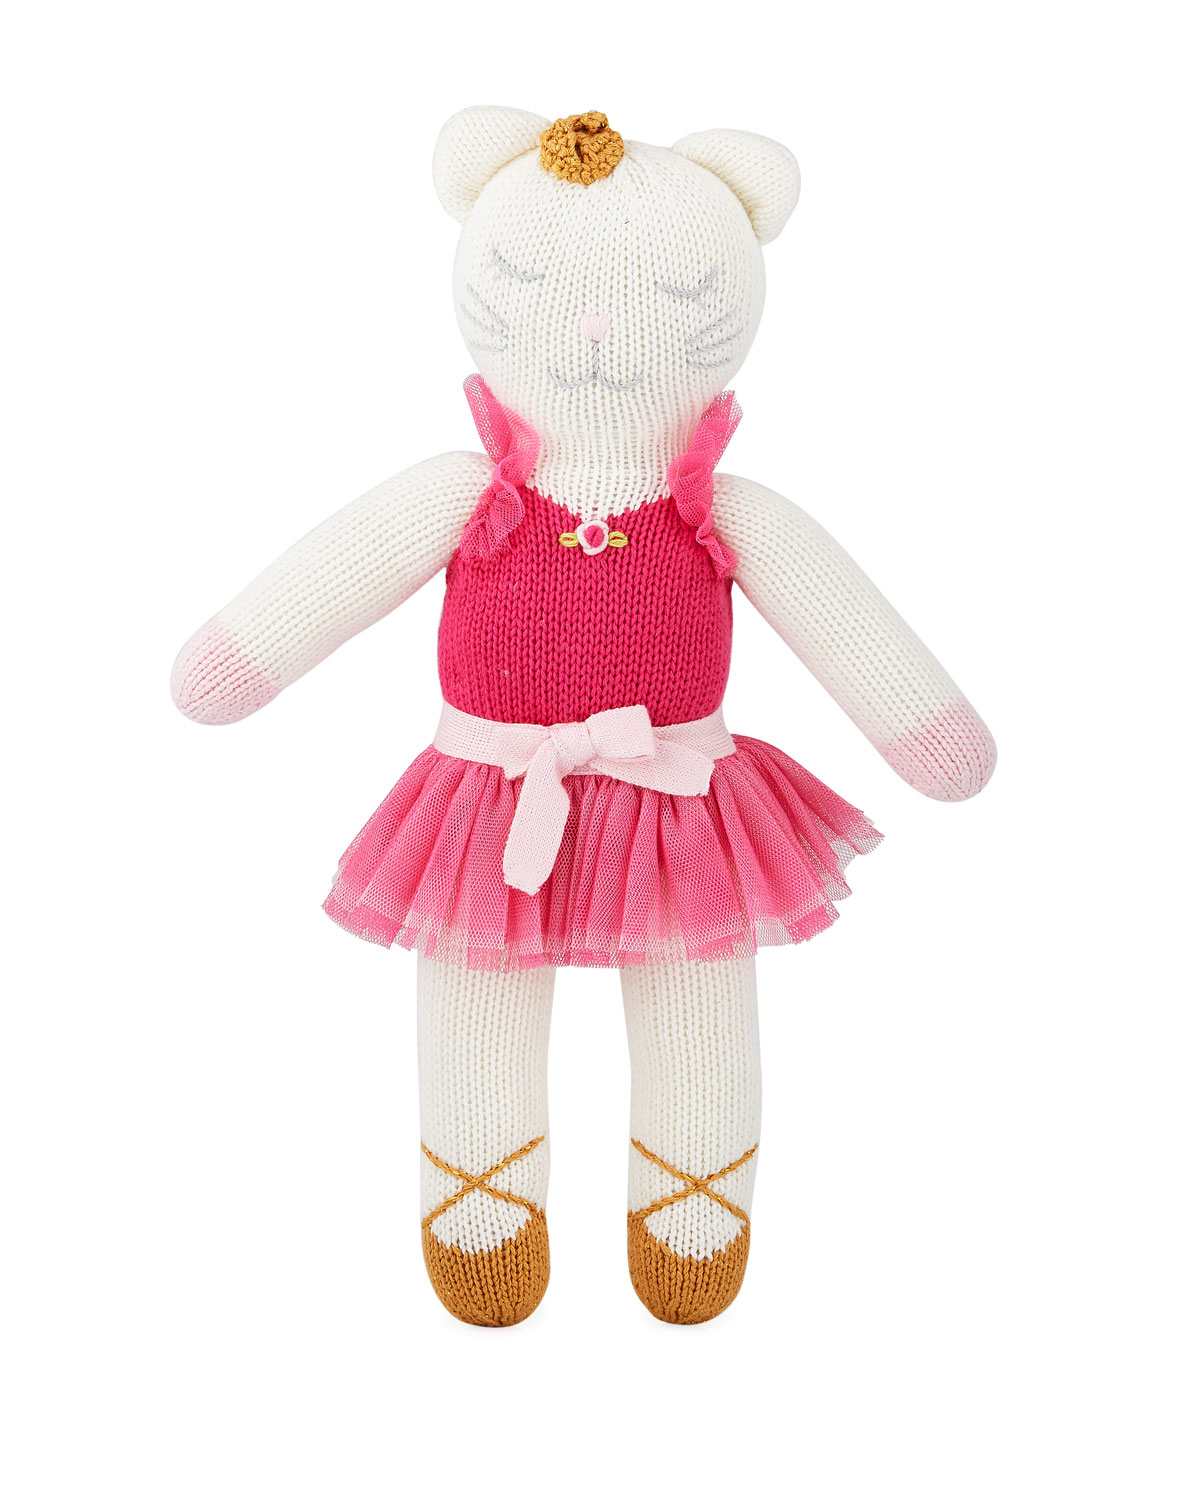 Knit Ballerina Kitten Doll 14